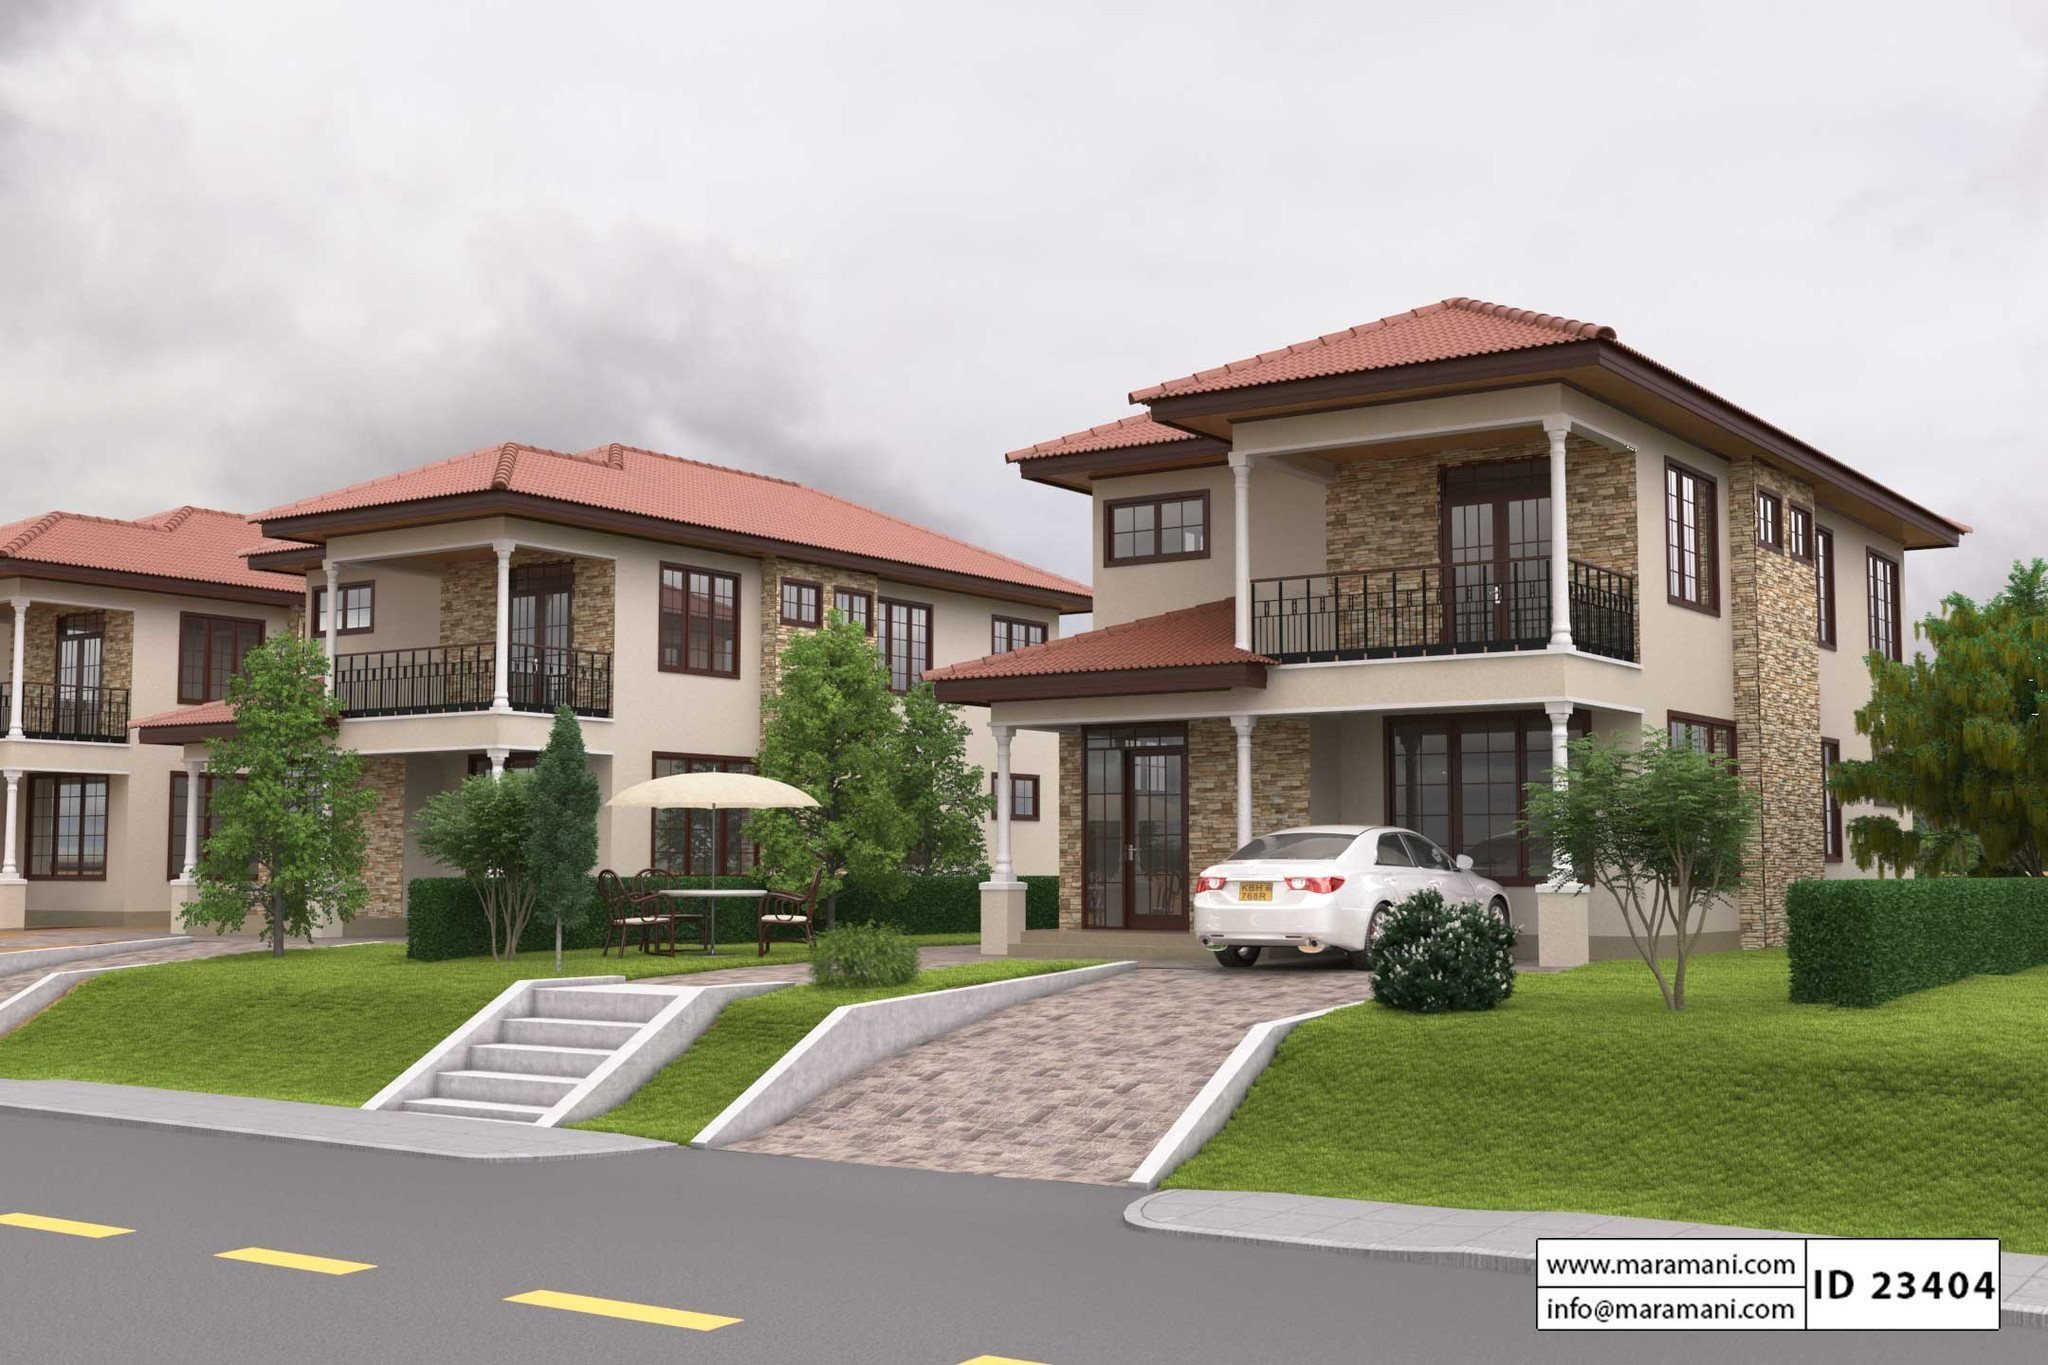 Best Three Bedroom House Id 23404 Maramani Com With Pictures